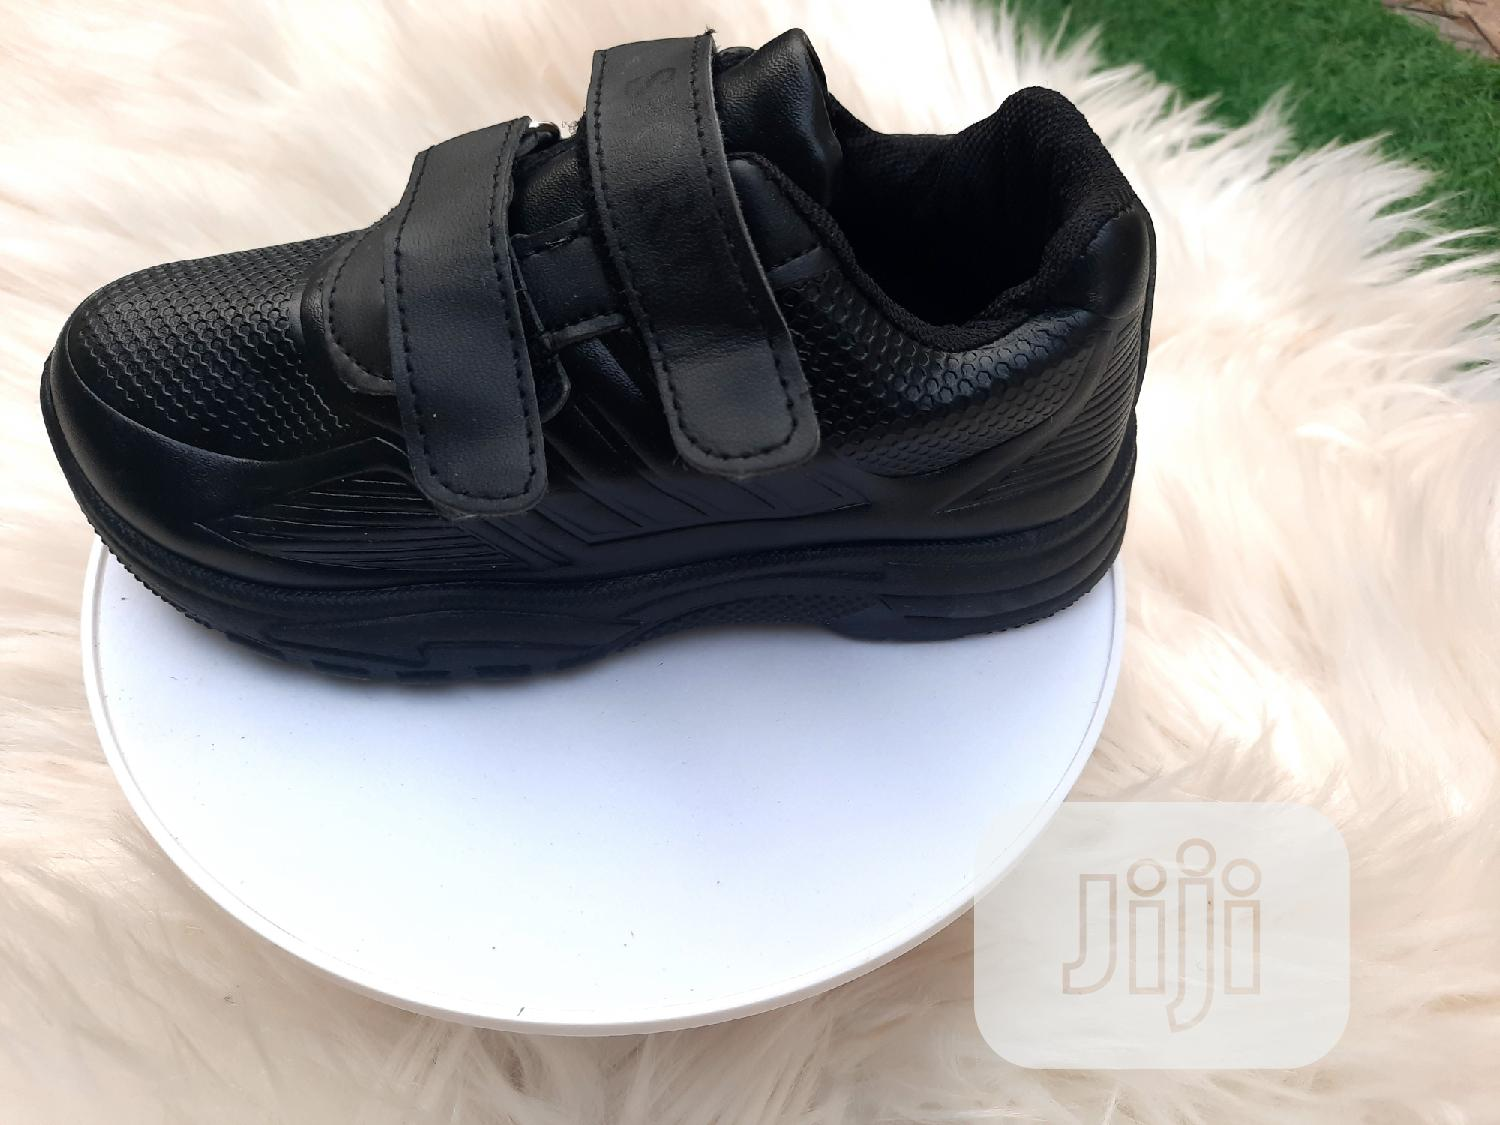 Brand New Black School Shoe | Children's Shoes for sale in Ikeja, Lagos State, Nigeria